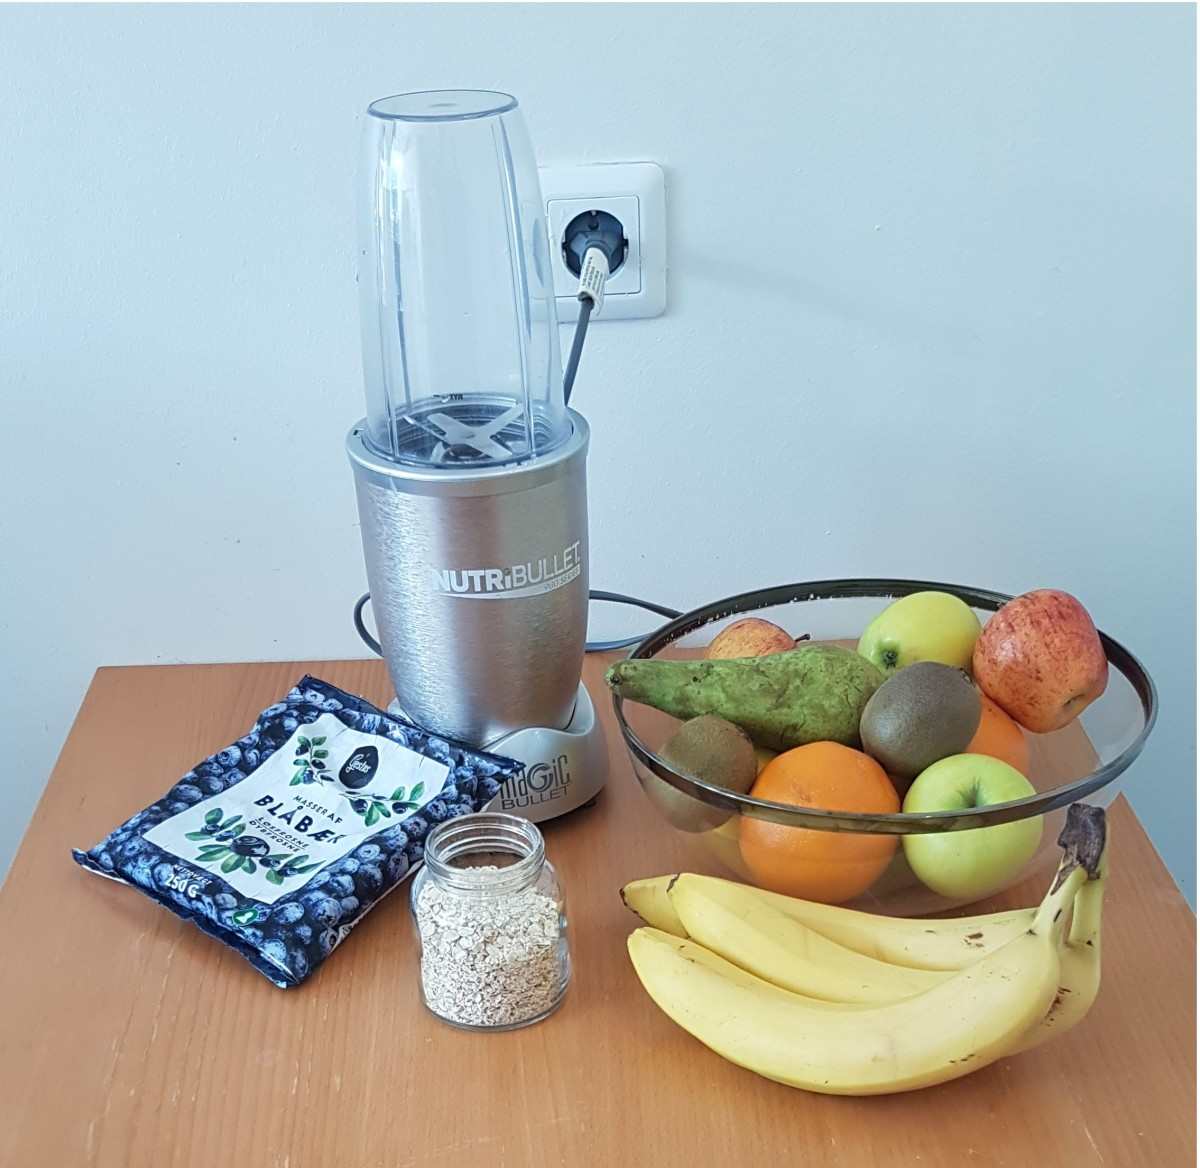 Everything needed to make a blueberry banana smoothie without using yogurt.